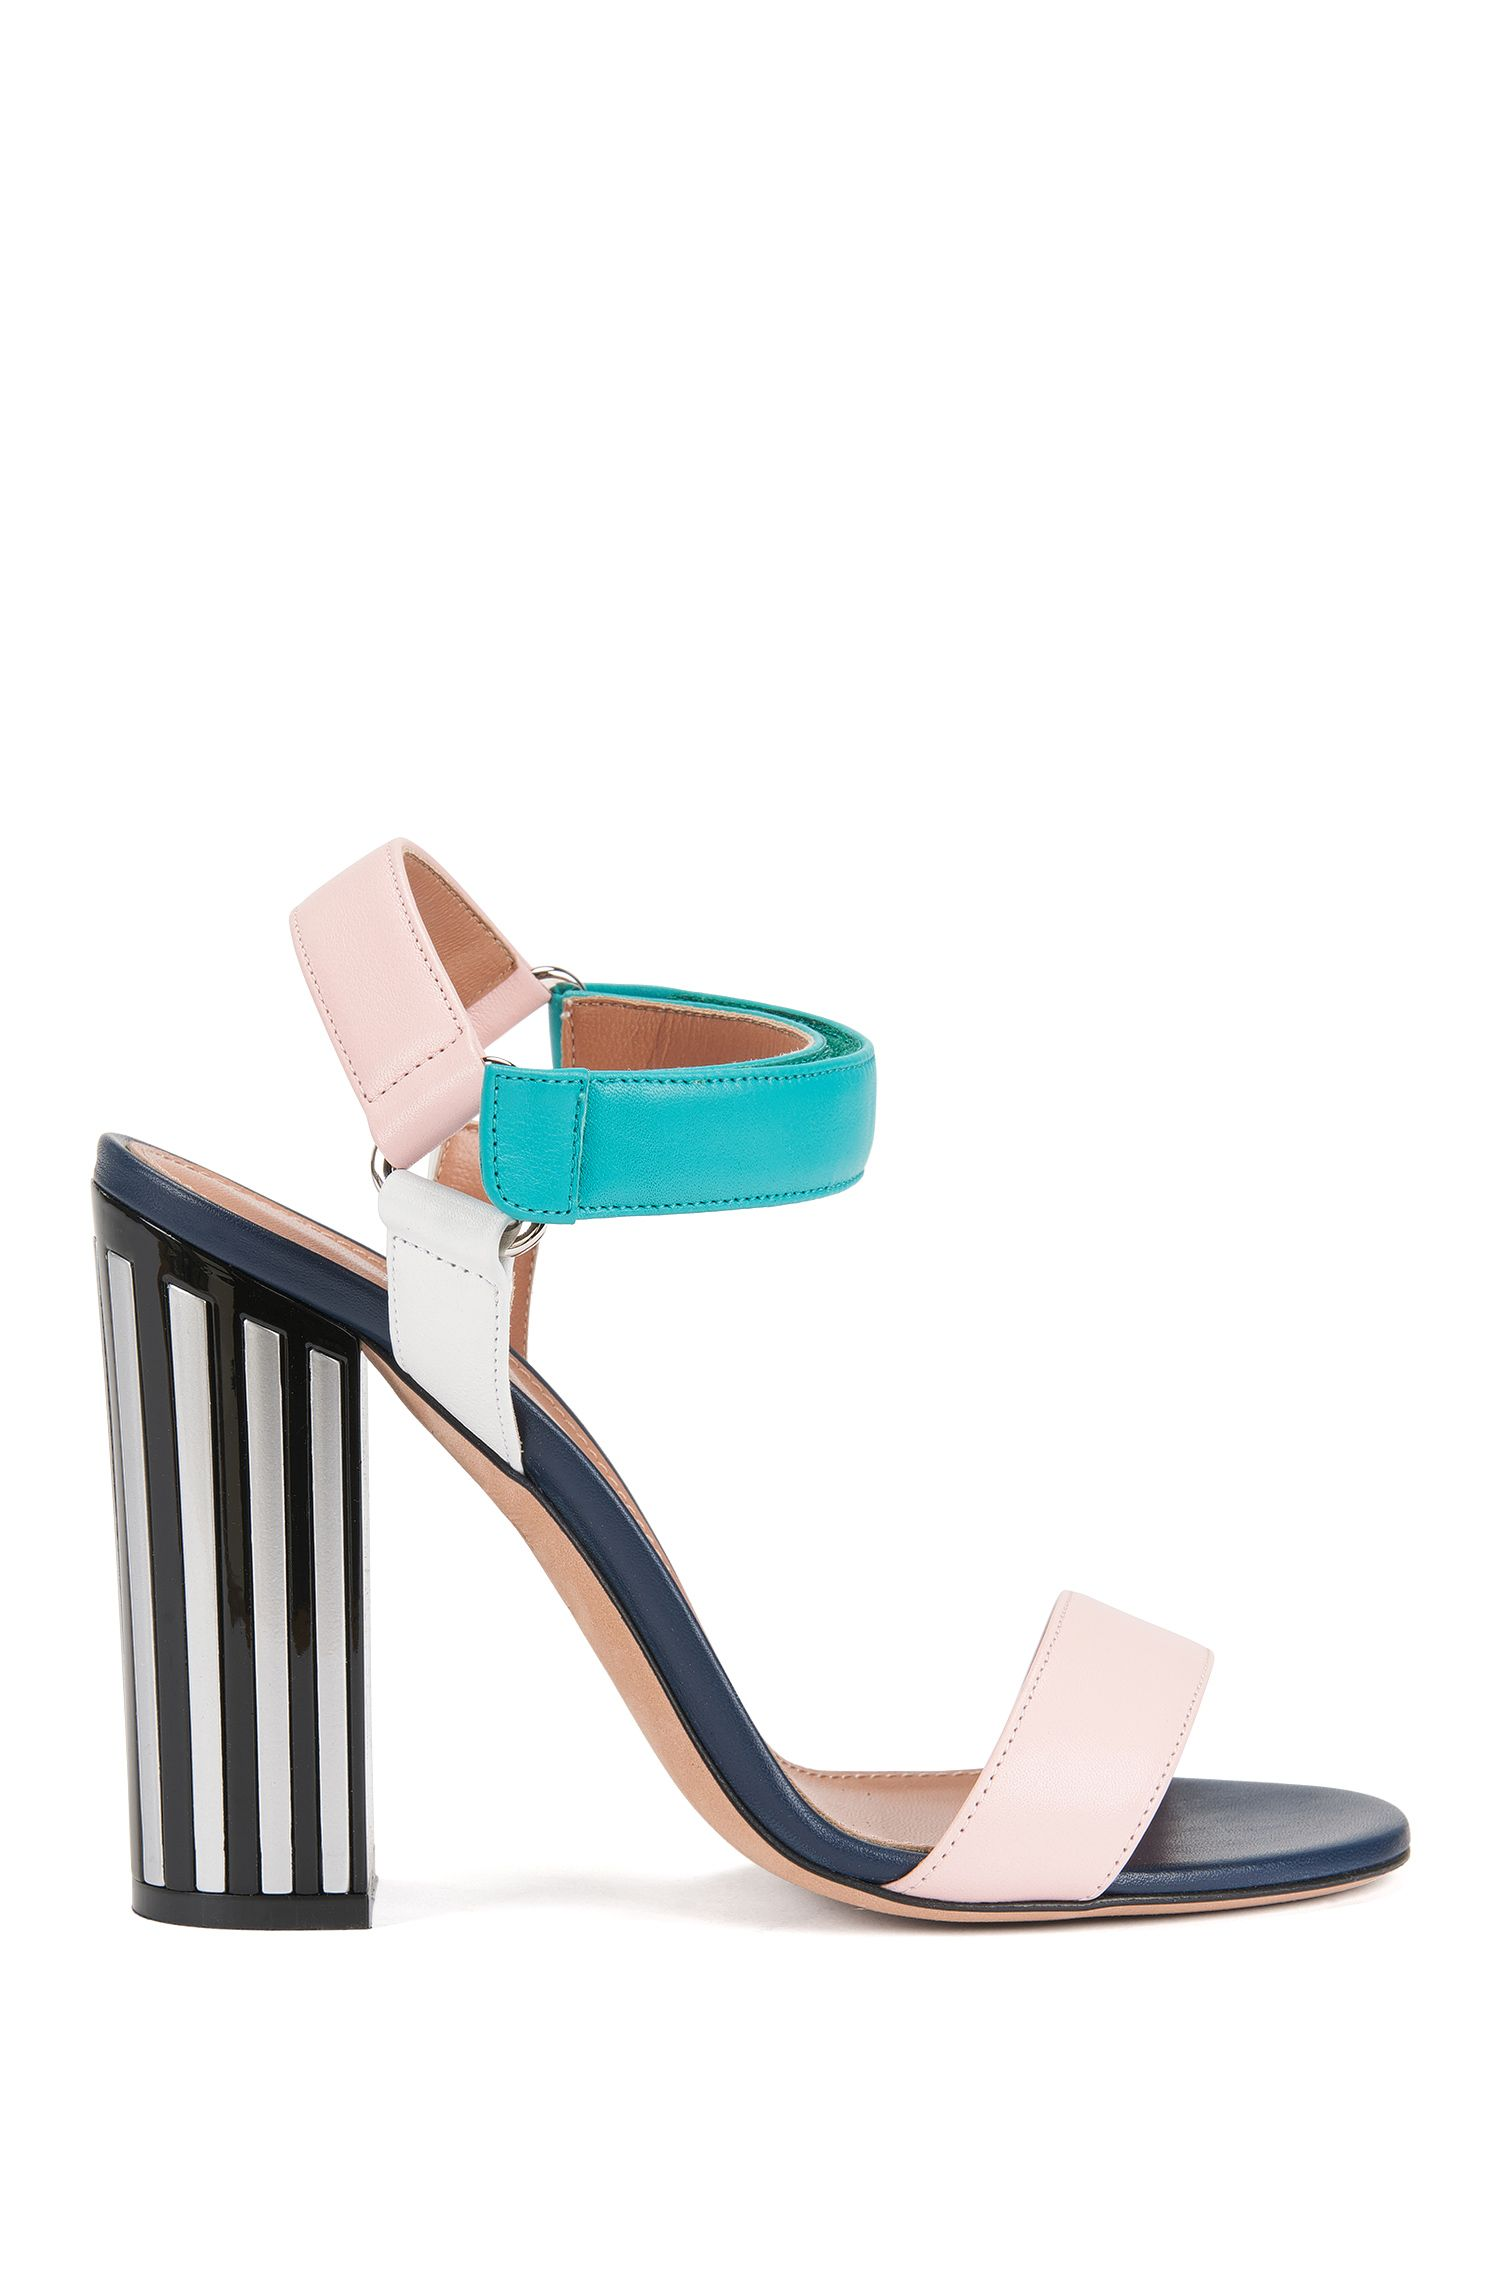 Gallery Collection Italian Leather Sandal   Sandal 100 GC